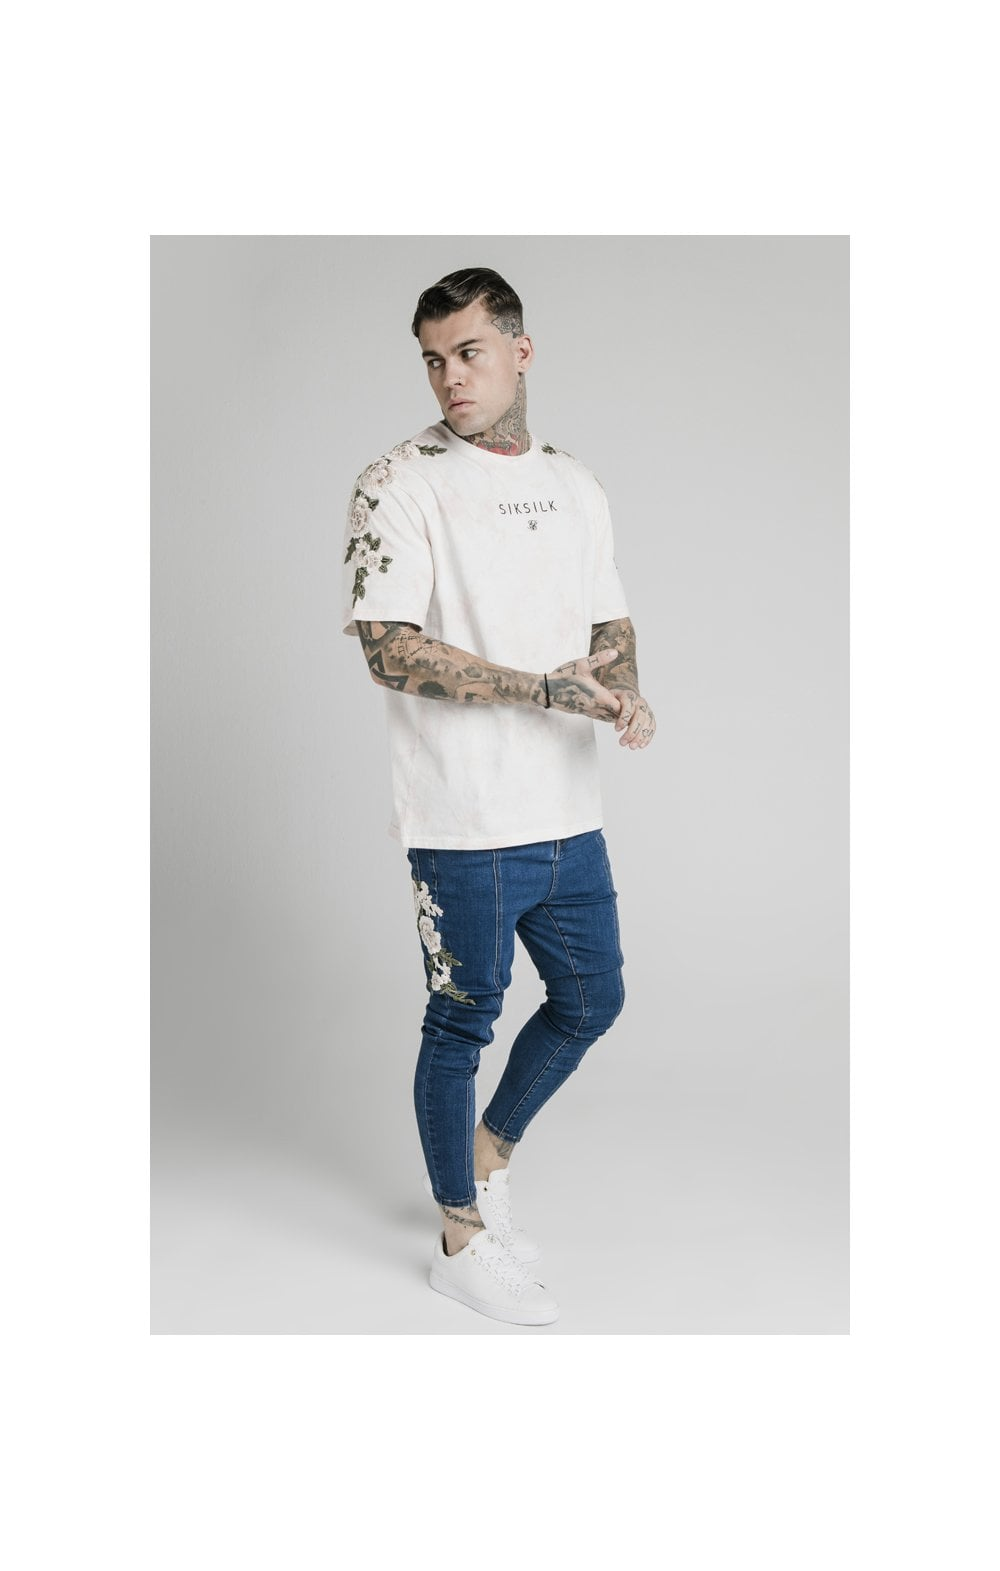 Load image into Gallery viewer, SikSilk Drop Crotch Pleated Appliqu Denims - Midstone (4)